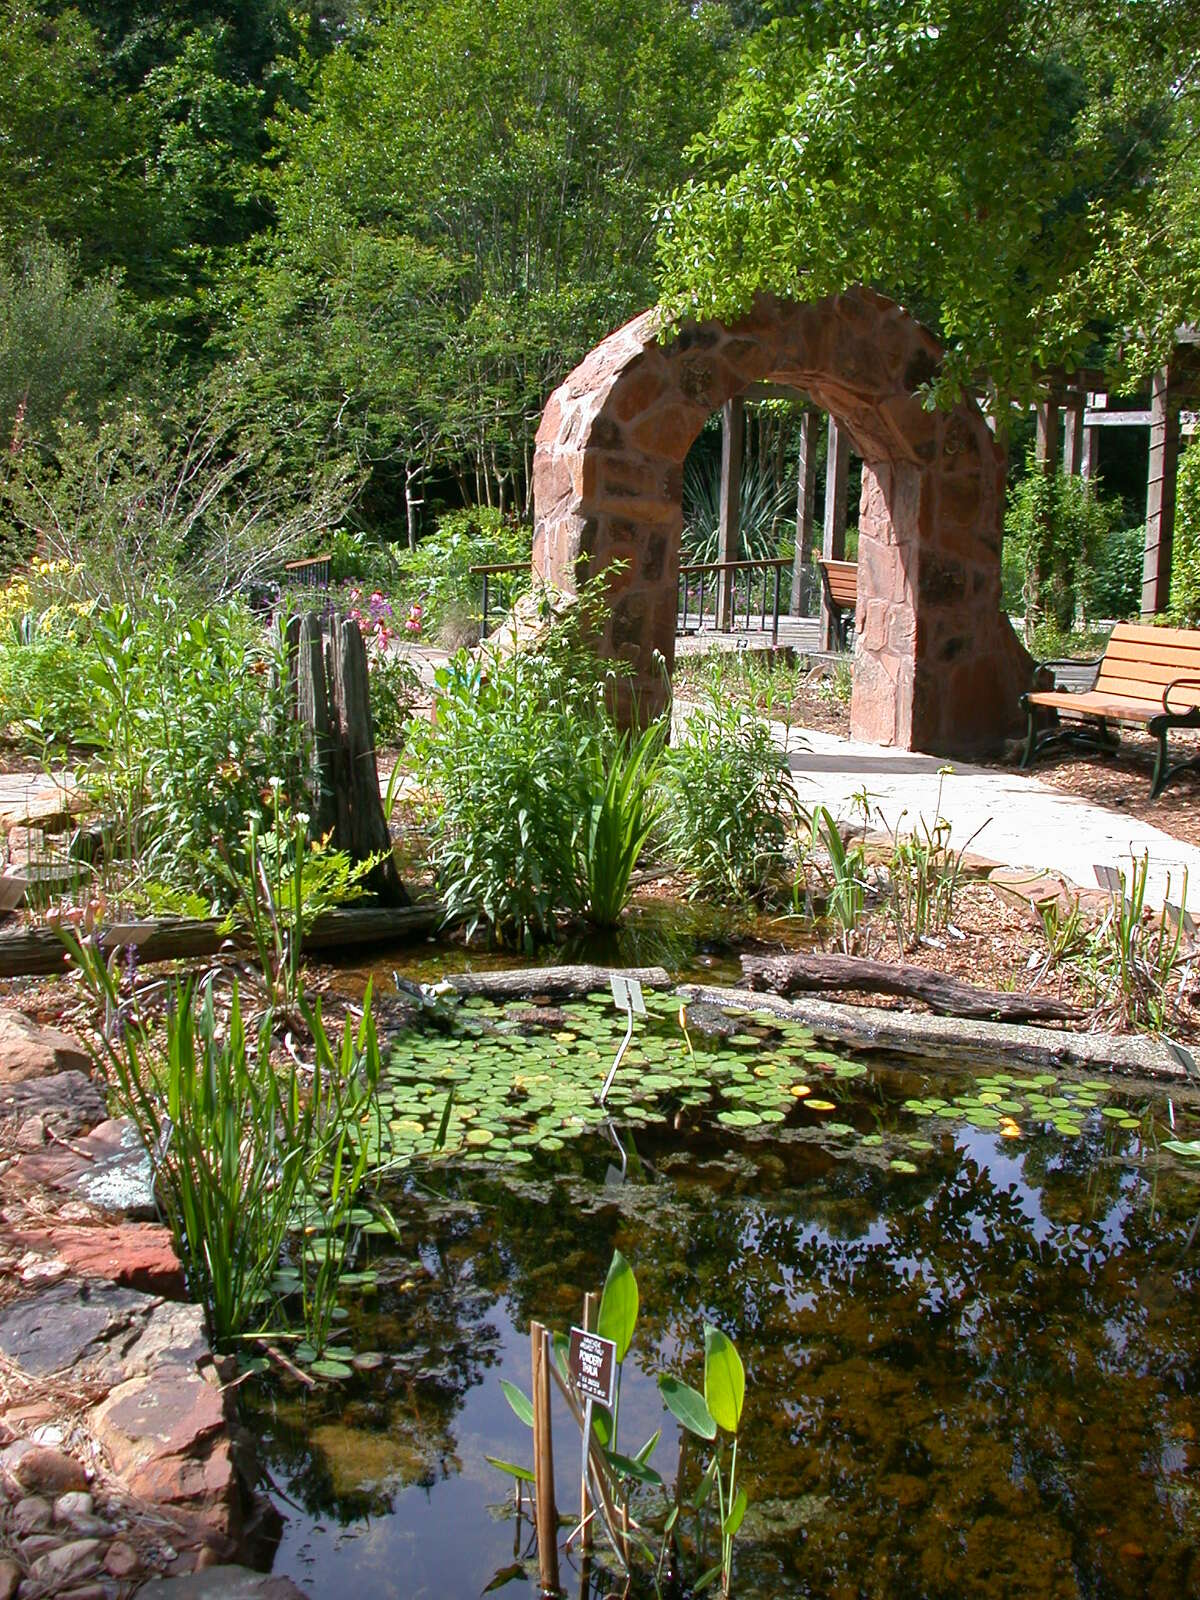 The endangered species garden at Mercer Arboretum and Botanic Gardens in Houston features 18 rare native species planted with common natives. The display covers about one-half acre on the 25 acres developed at the gardens.